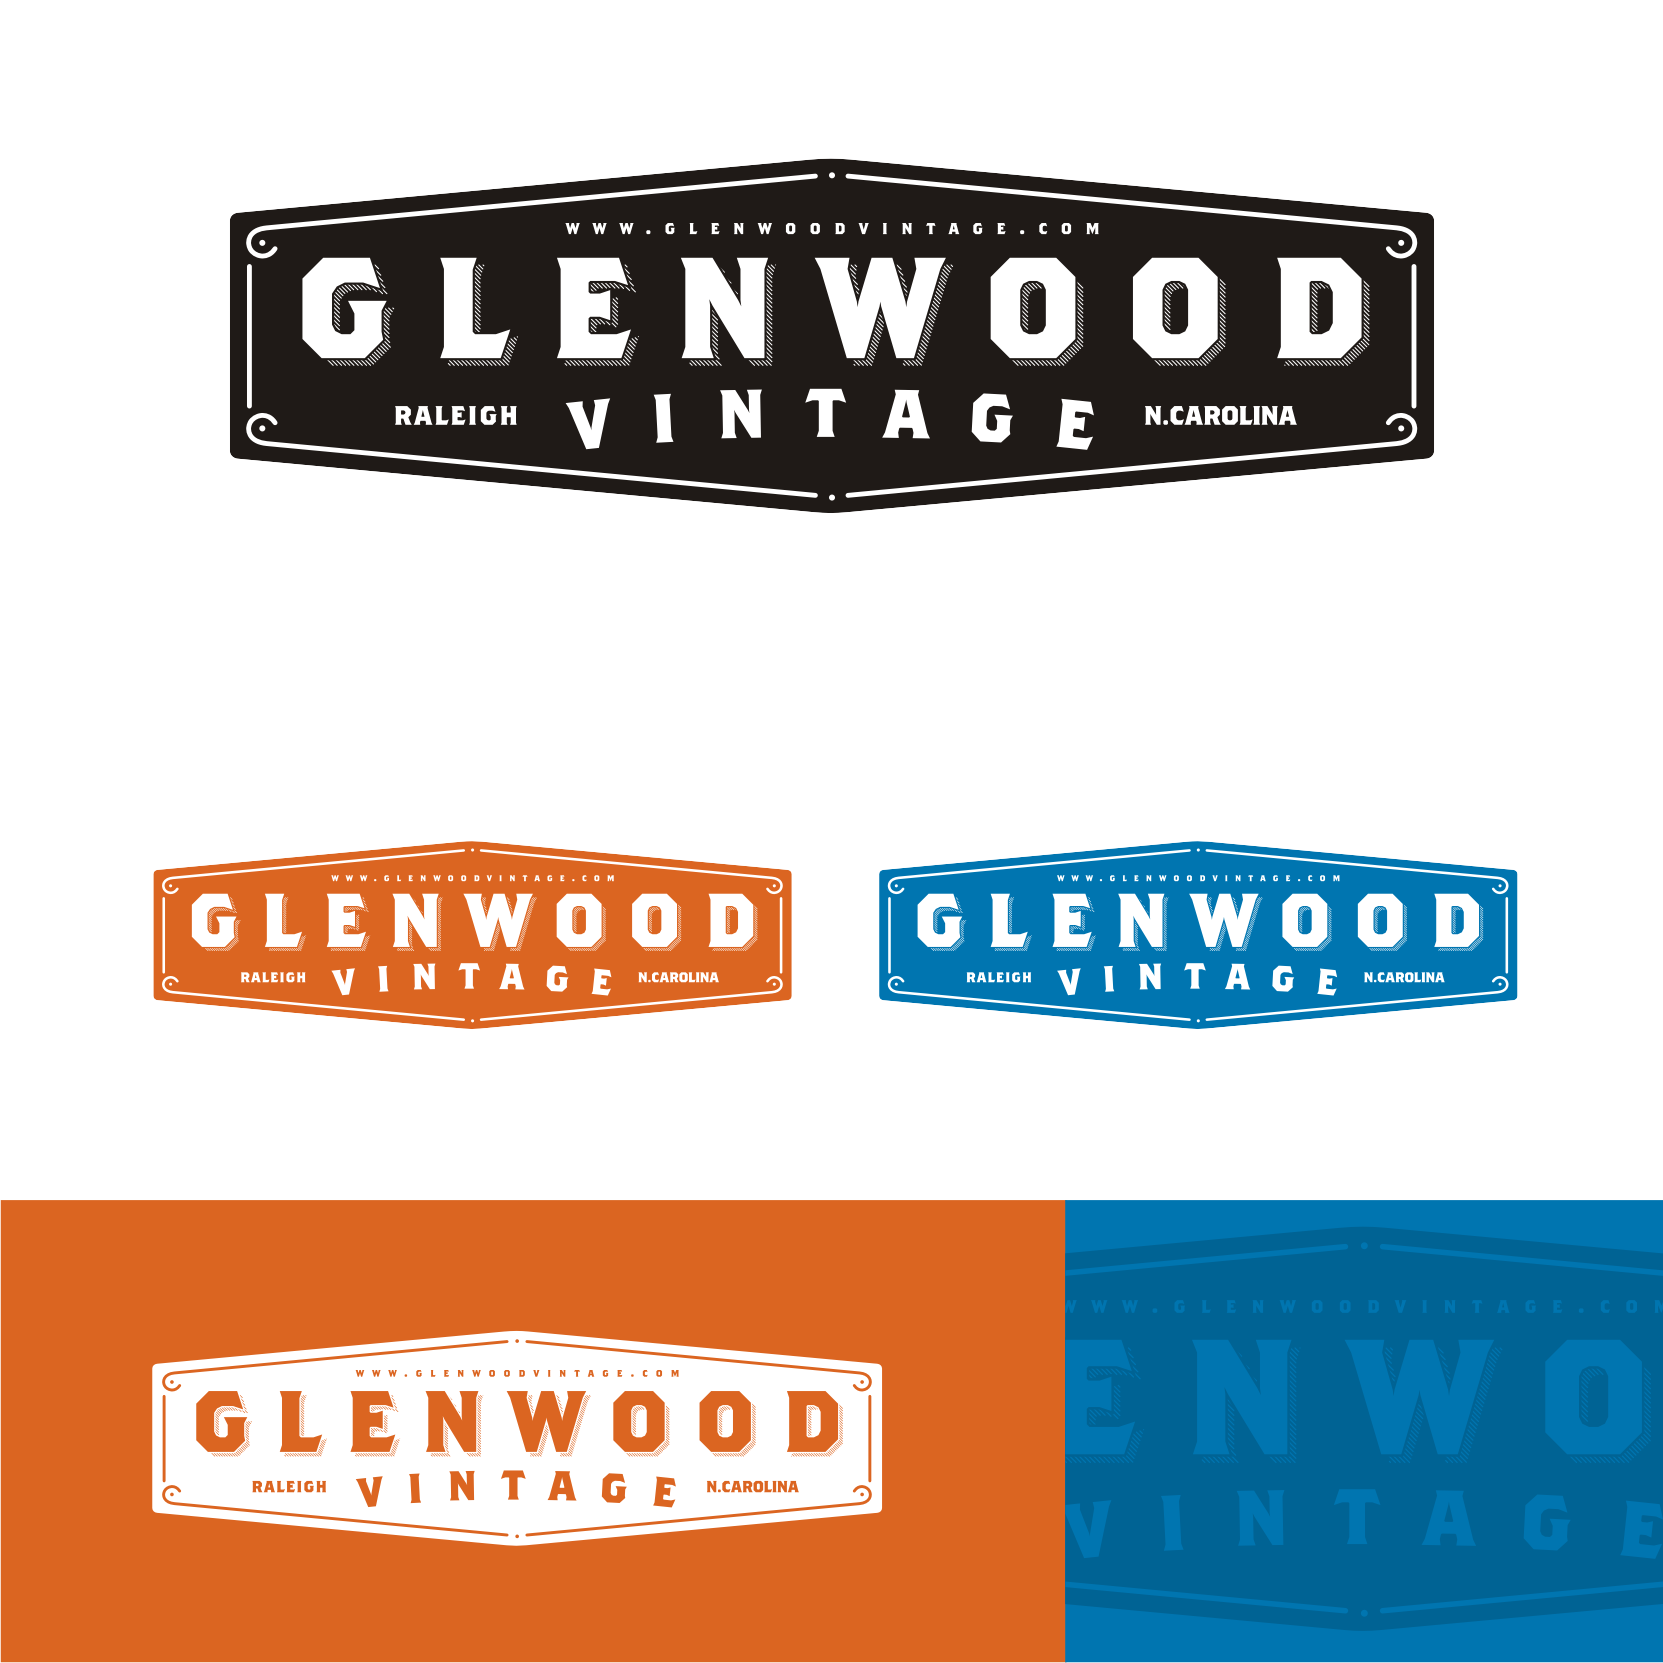 Create the next logo for Glenwood Vintage